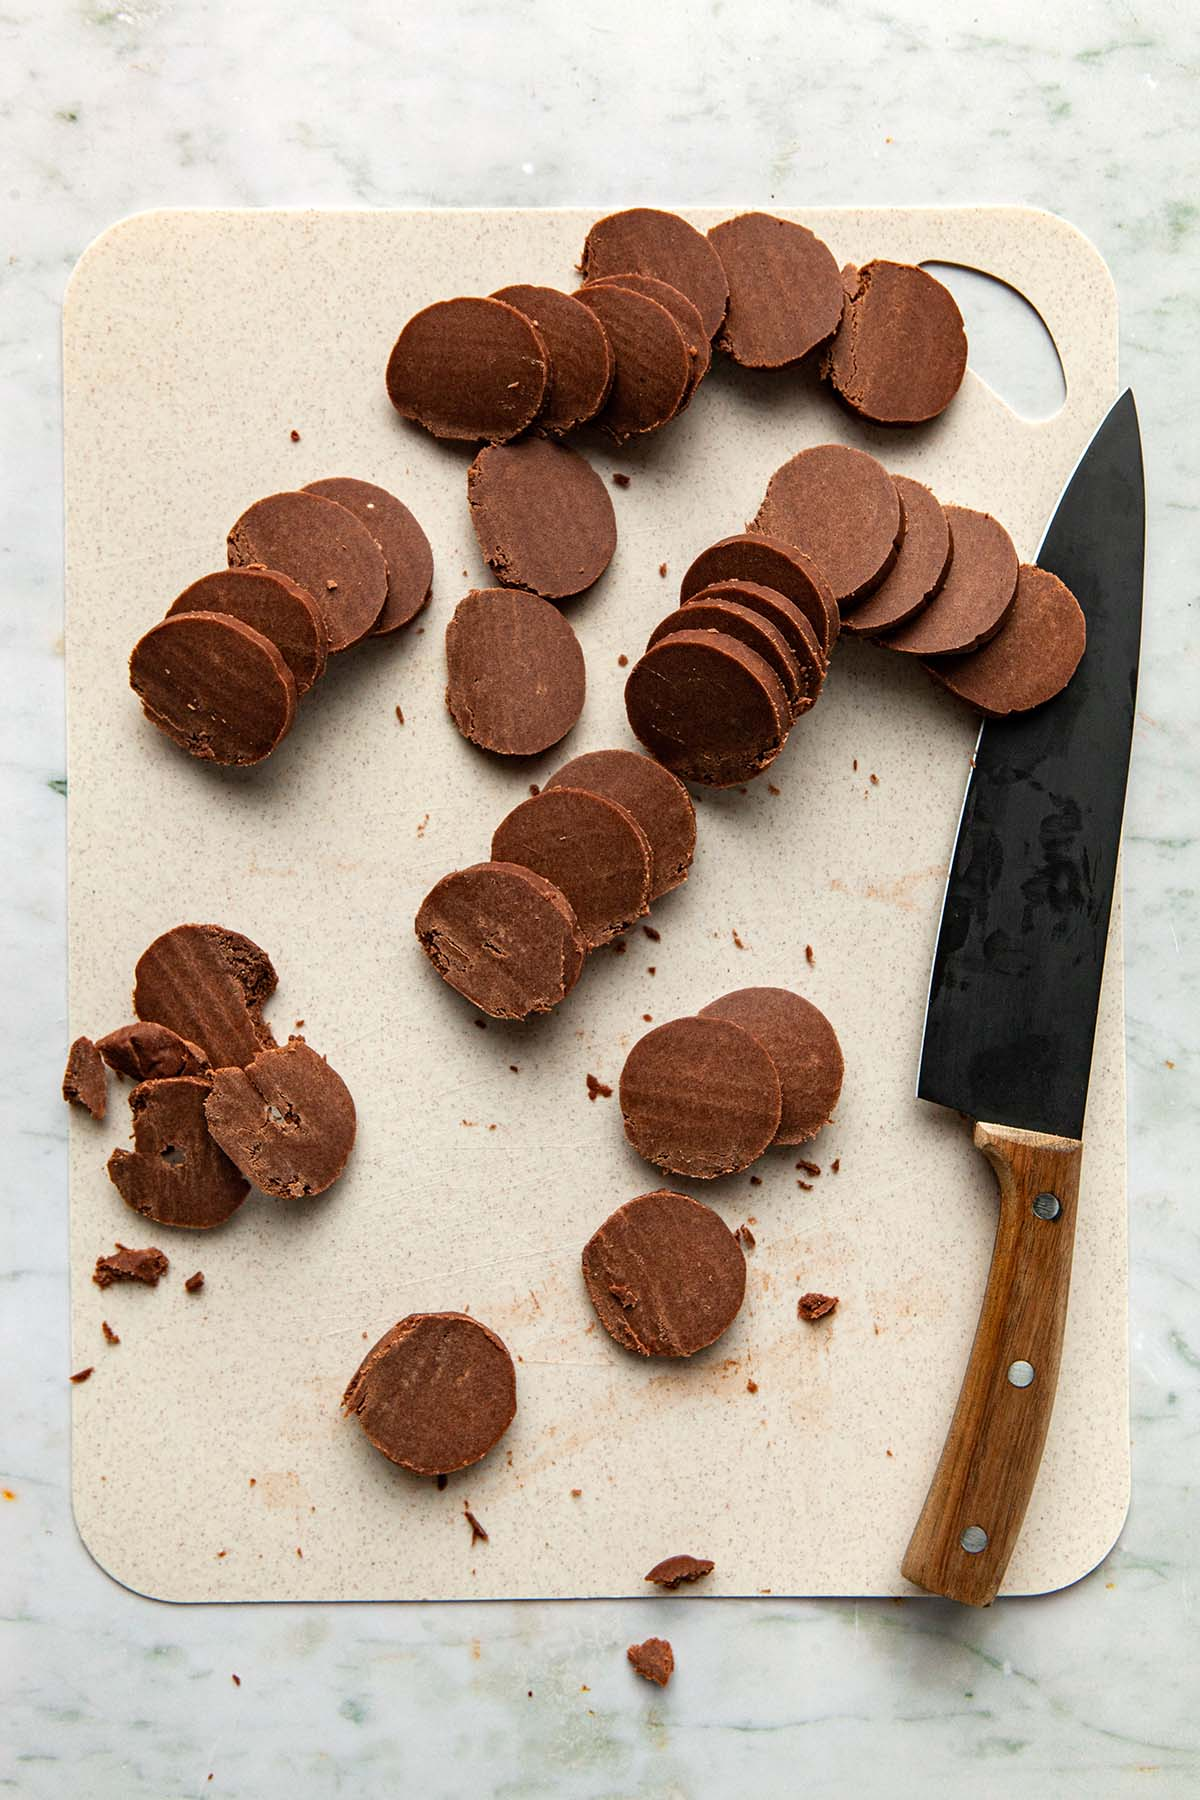 Sliced cookies on a beige cutting board next to a alrge wood handled chef's knife.